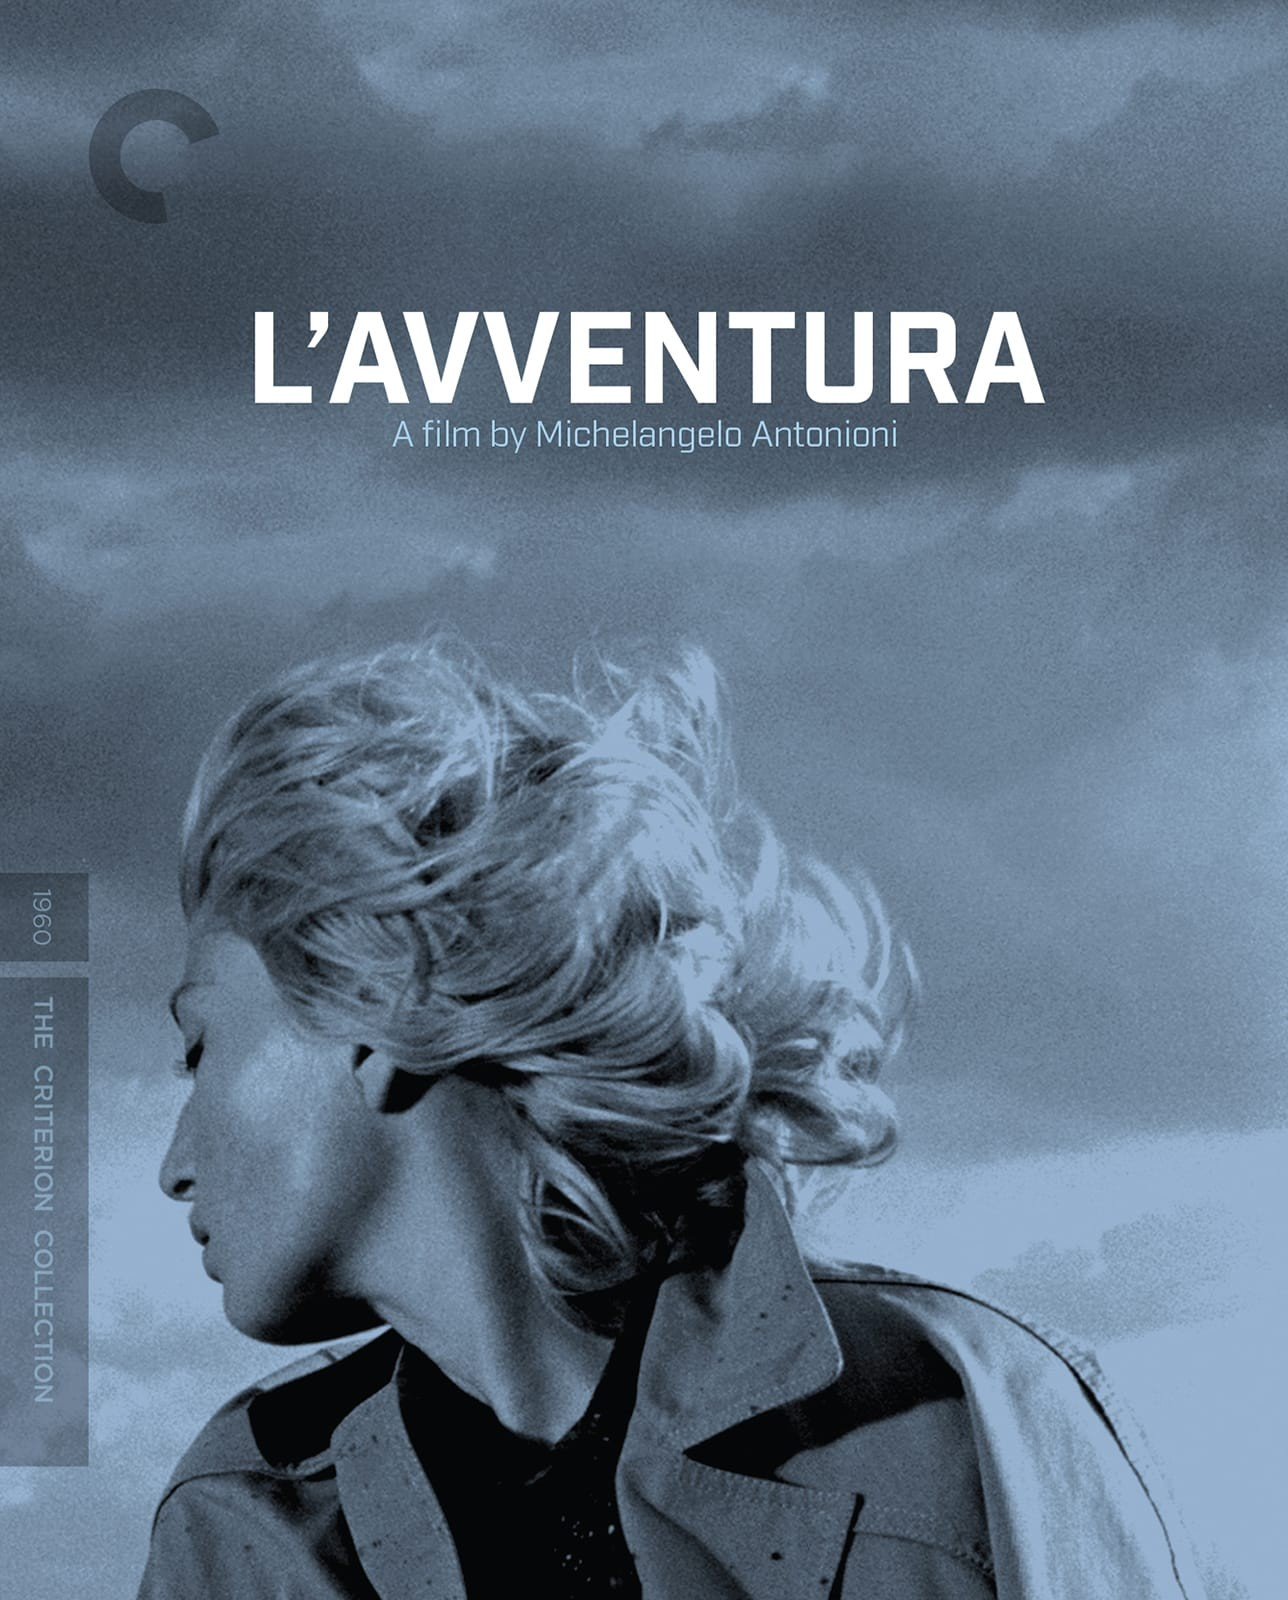 L'Avventura (1960) - Directed by: Michelangelo AntonioniStarring:Monica Vitti, Lea Massari, Gabriele Ferzetti, Dominique BlacharRated: NRRunning Time: 2 h 24 mTMM Score: 4 stars out of 5STRENGTHS: Directing, Cinematography, ThemesWEAKNESSES: Pacing, Length